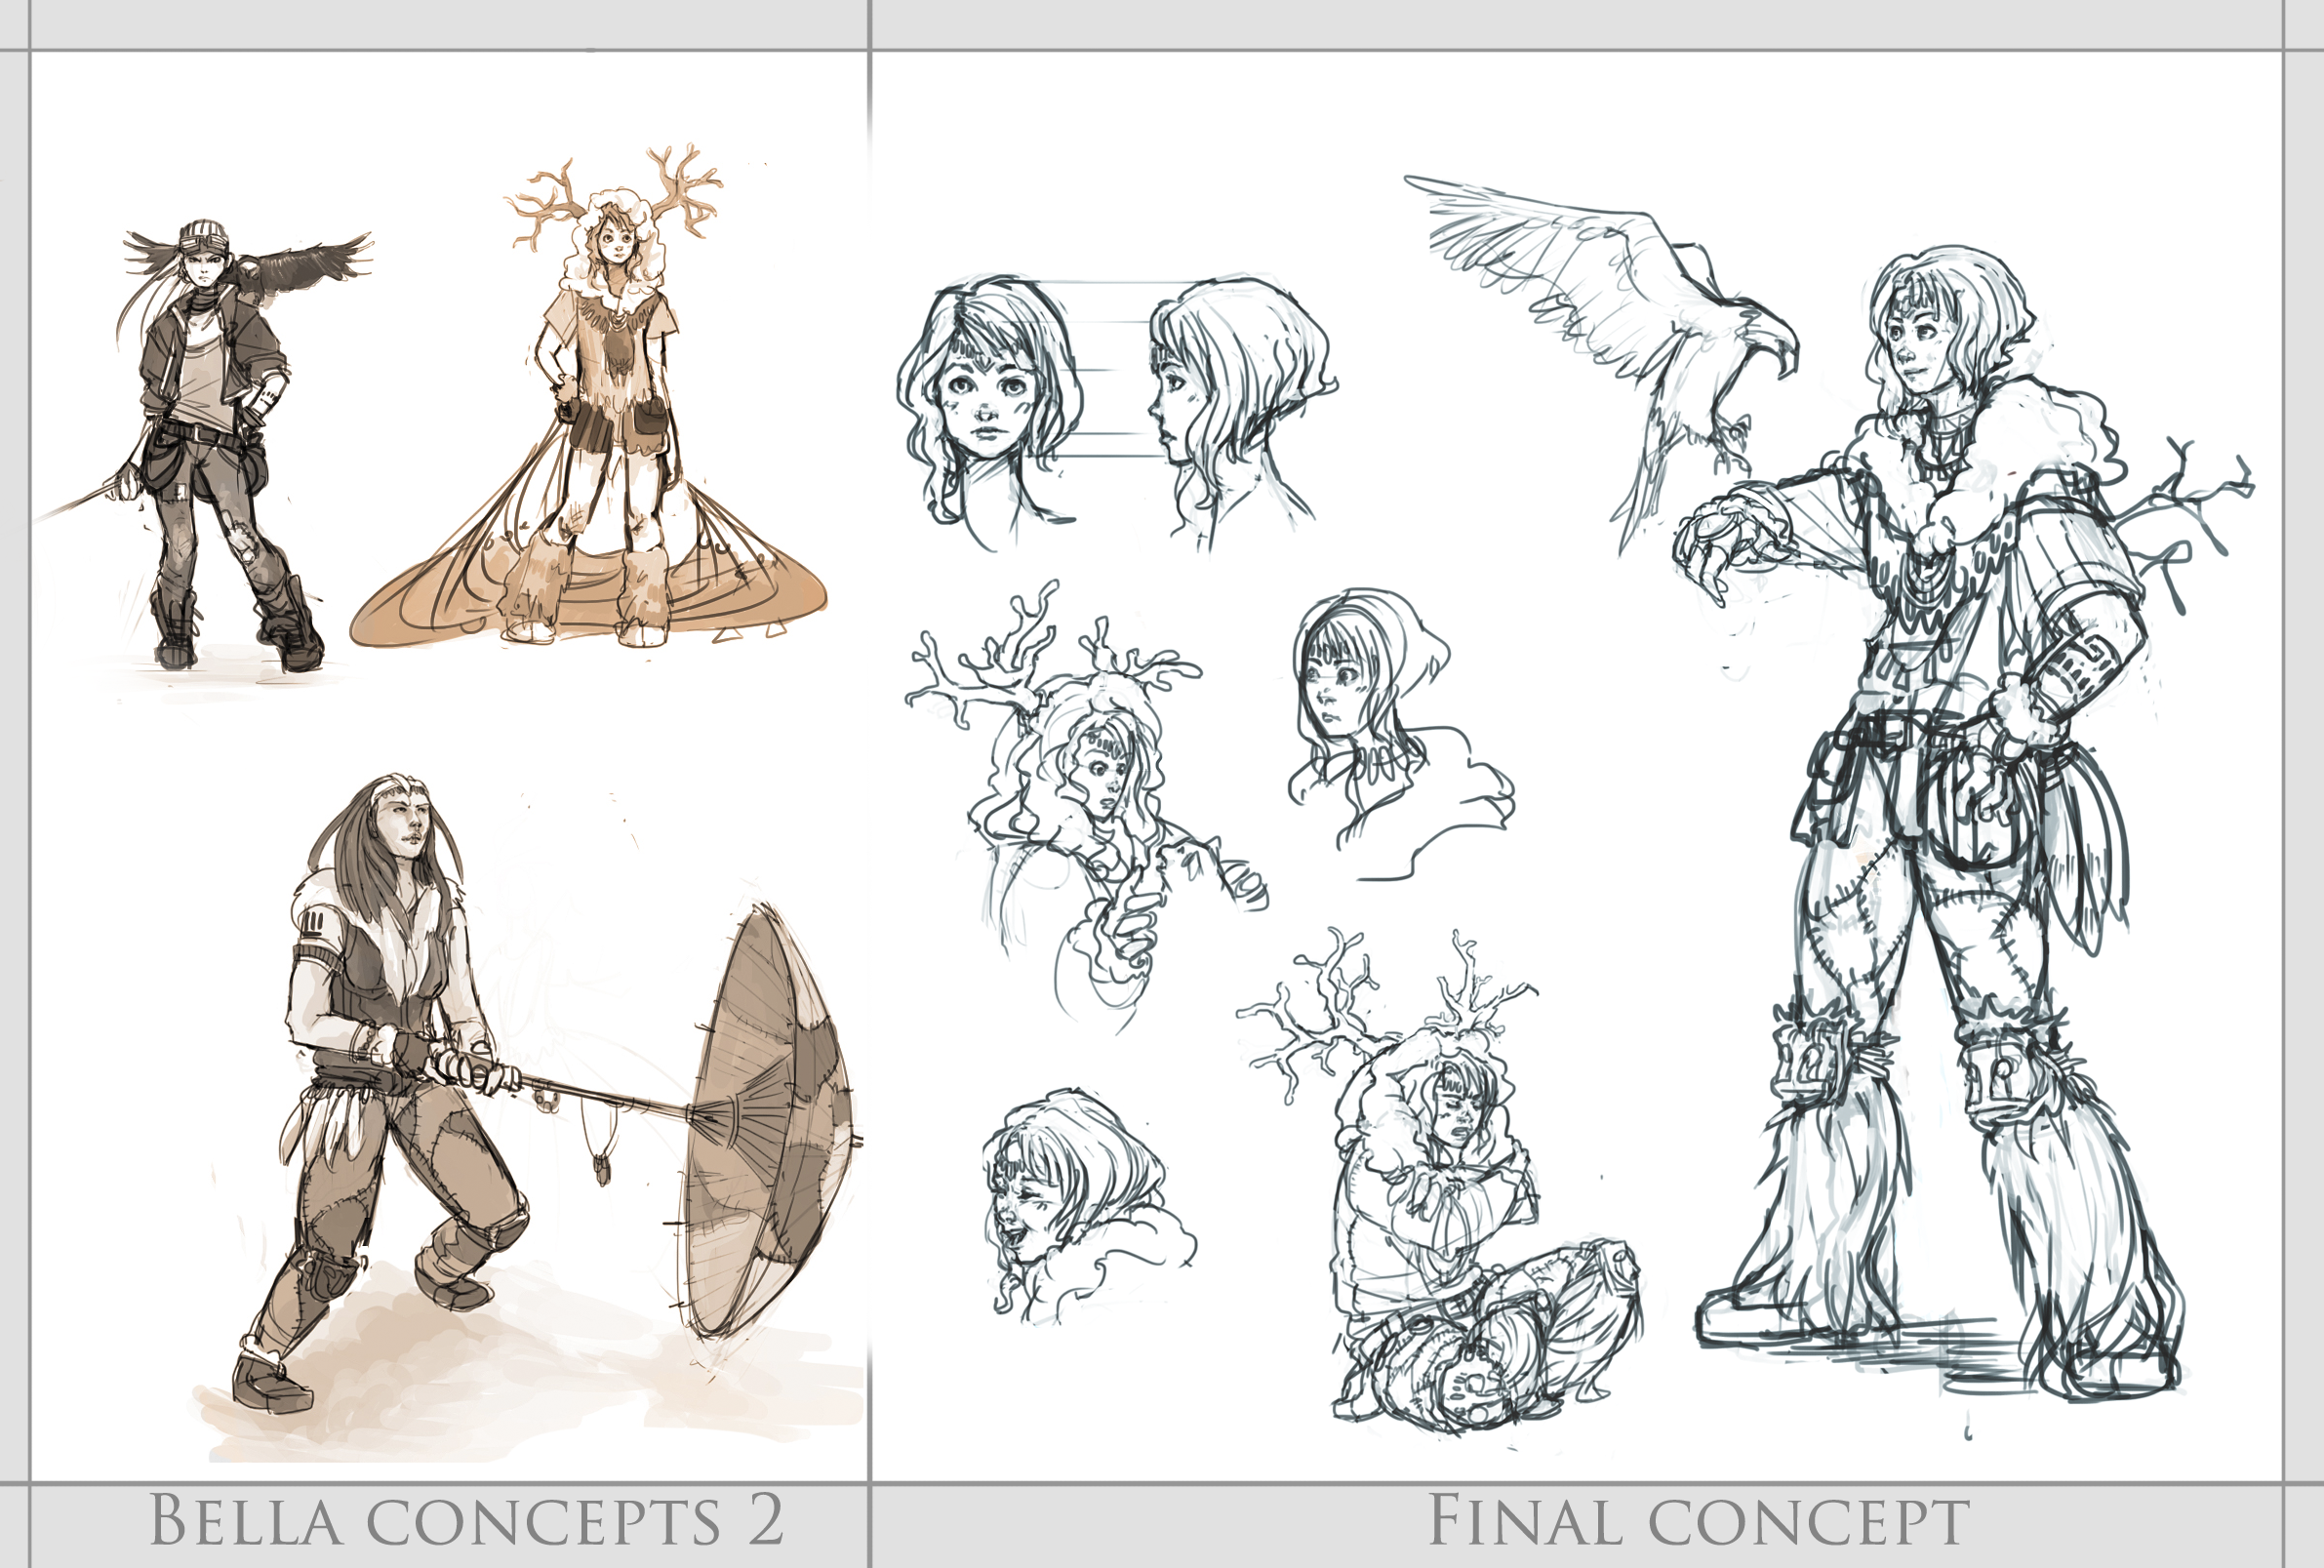 Character Concept Art From Initial Sketch To Final Design : Bella concept final design by resusan on deviantart